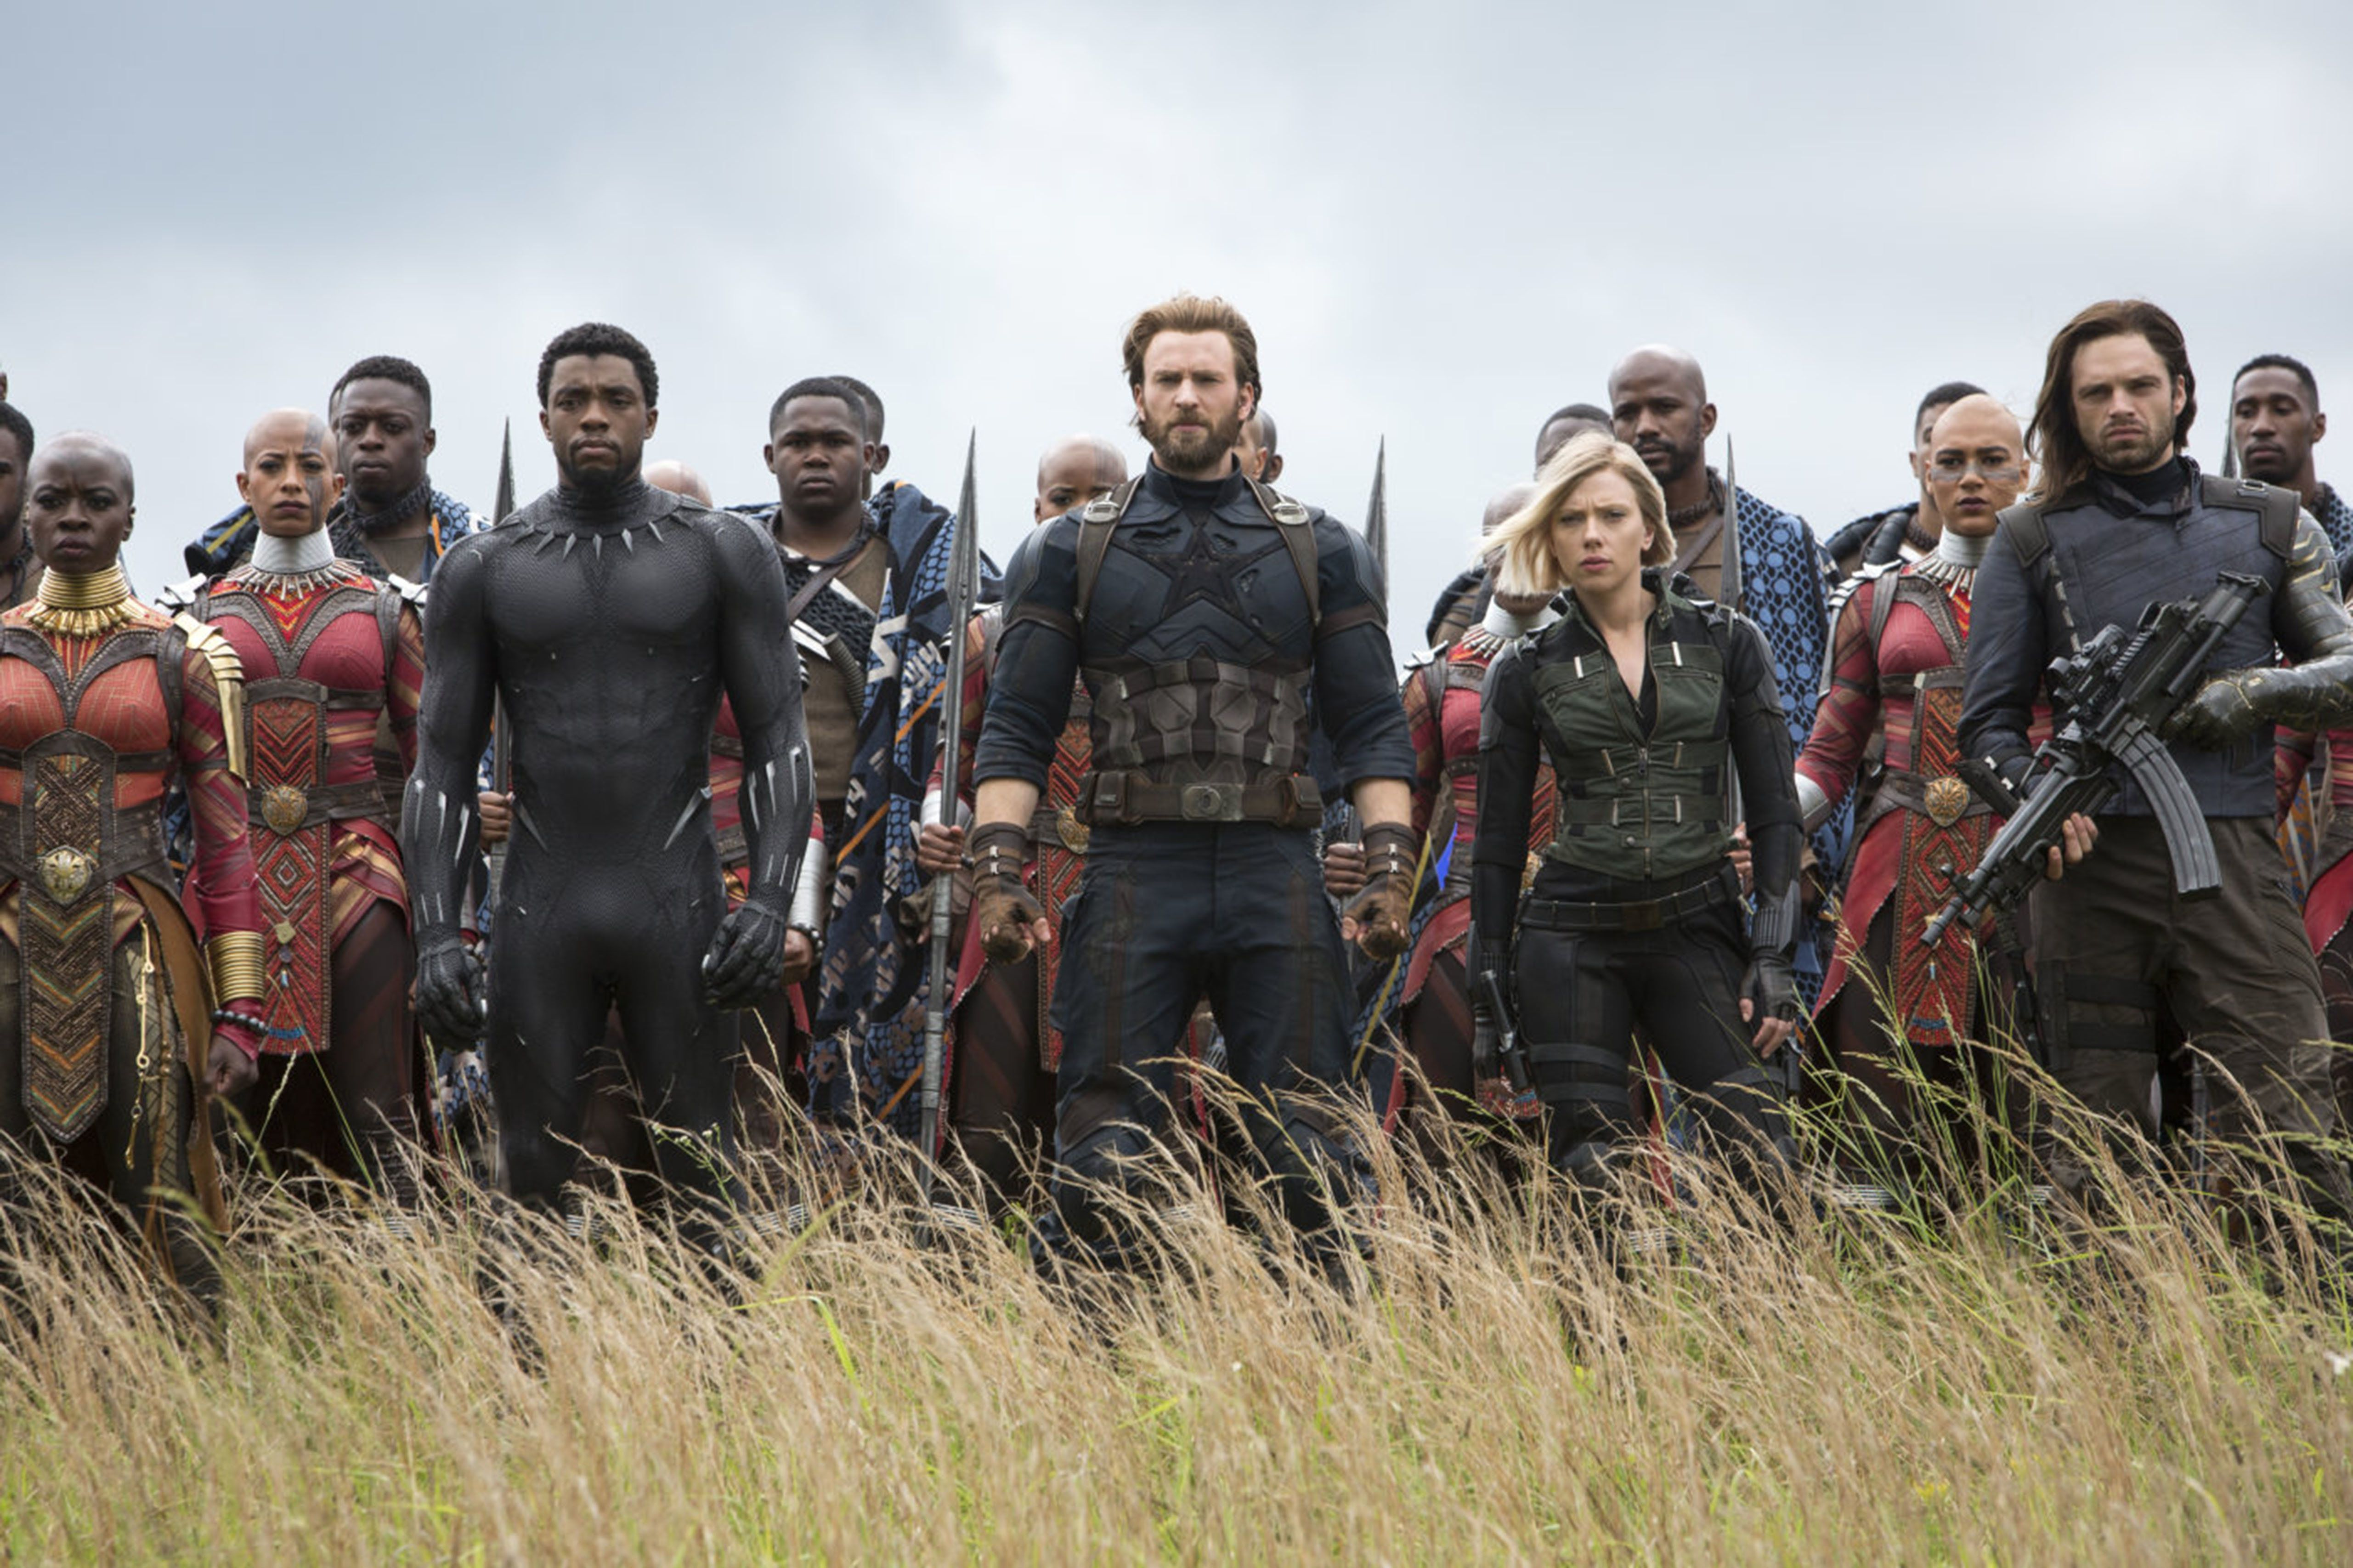 It's Official - 'Avengers: Infinity War' Is The Biggest Superhero Film In UK Cinema History